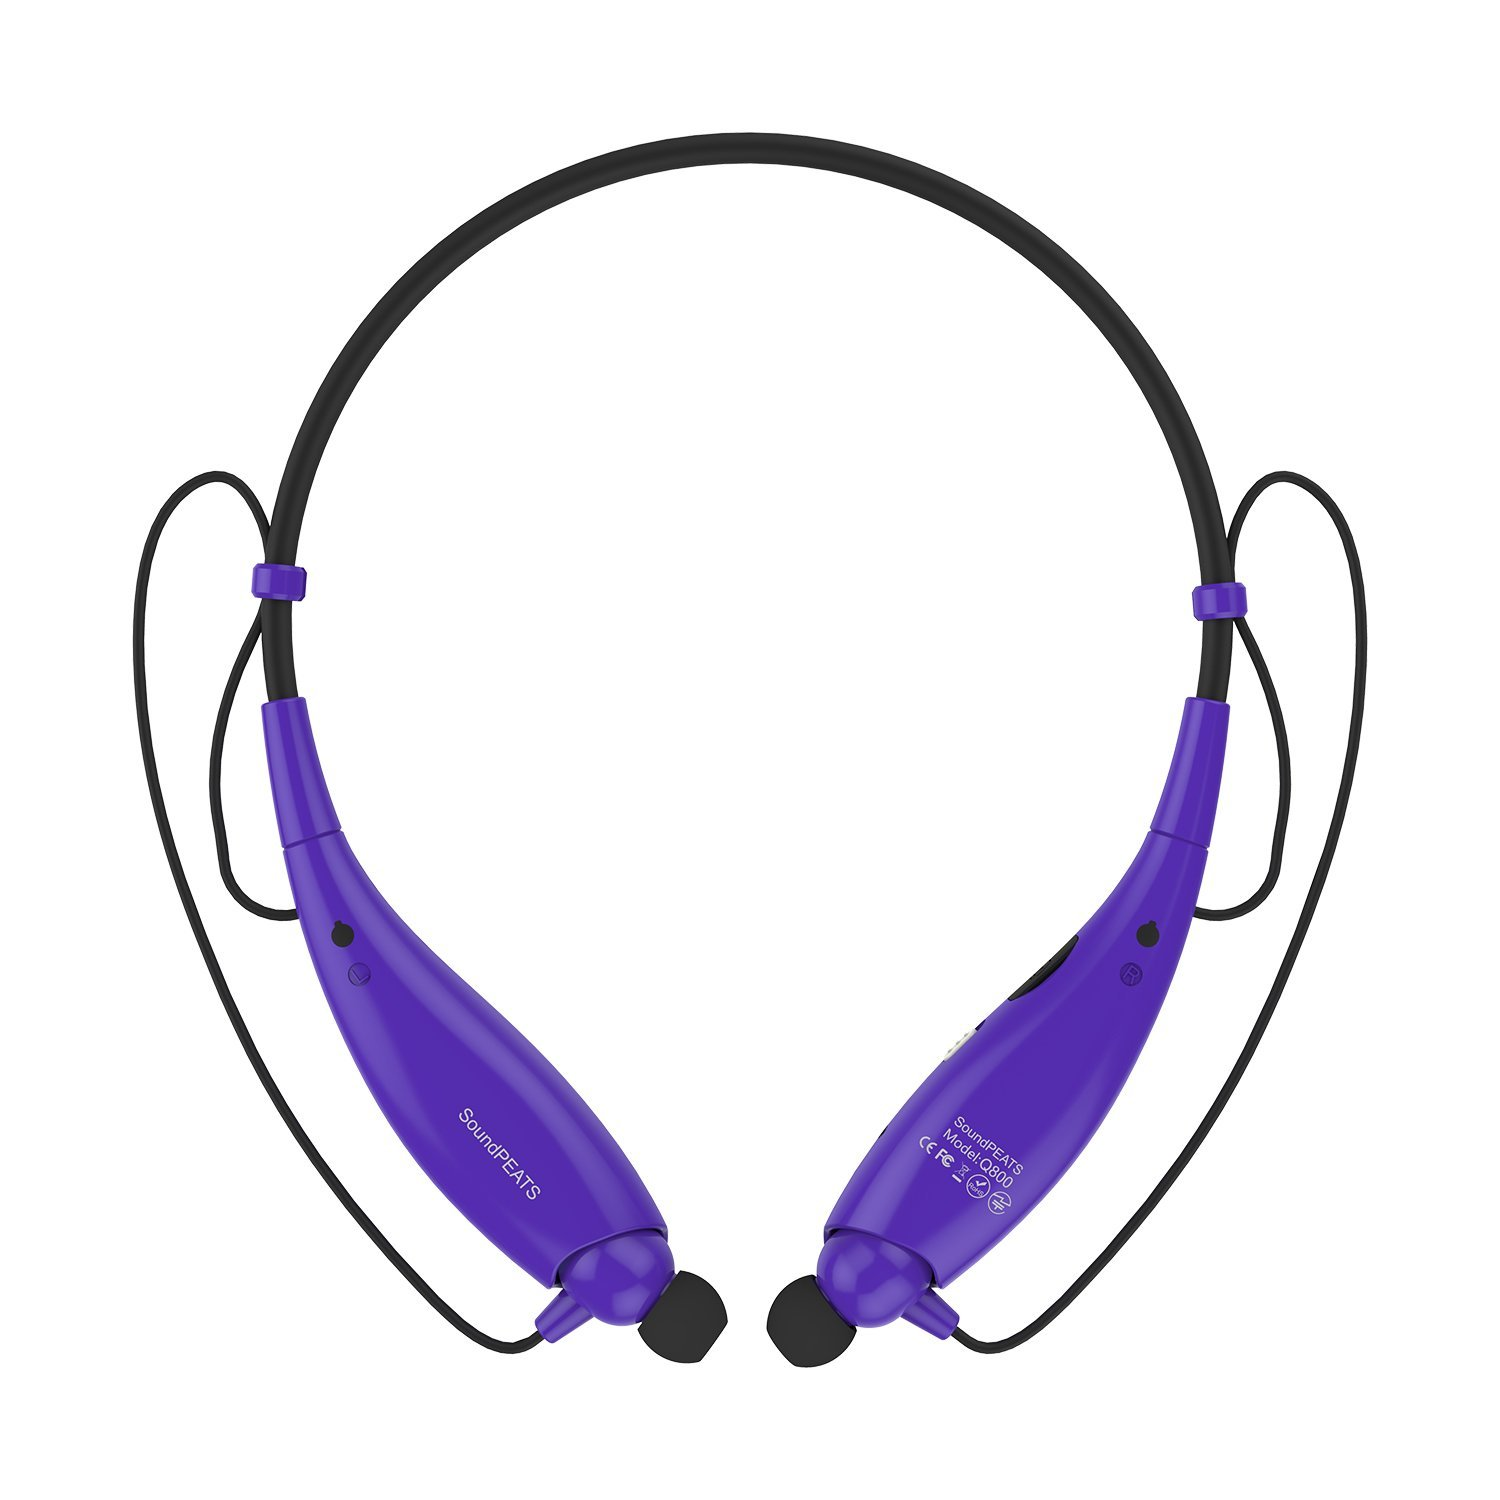 Amazon Deal: Wireless Bluetooth Headset Stereo Neckband Only $19.99 (Reg. $99.99)